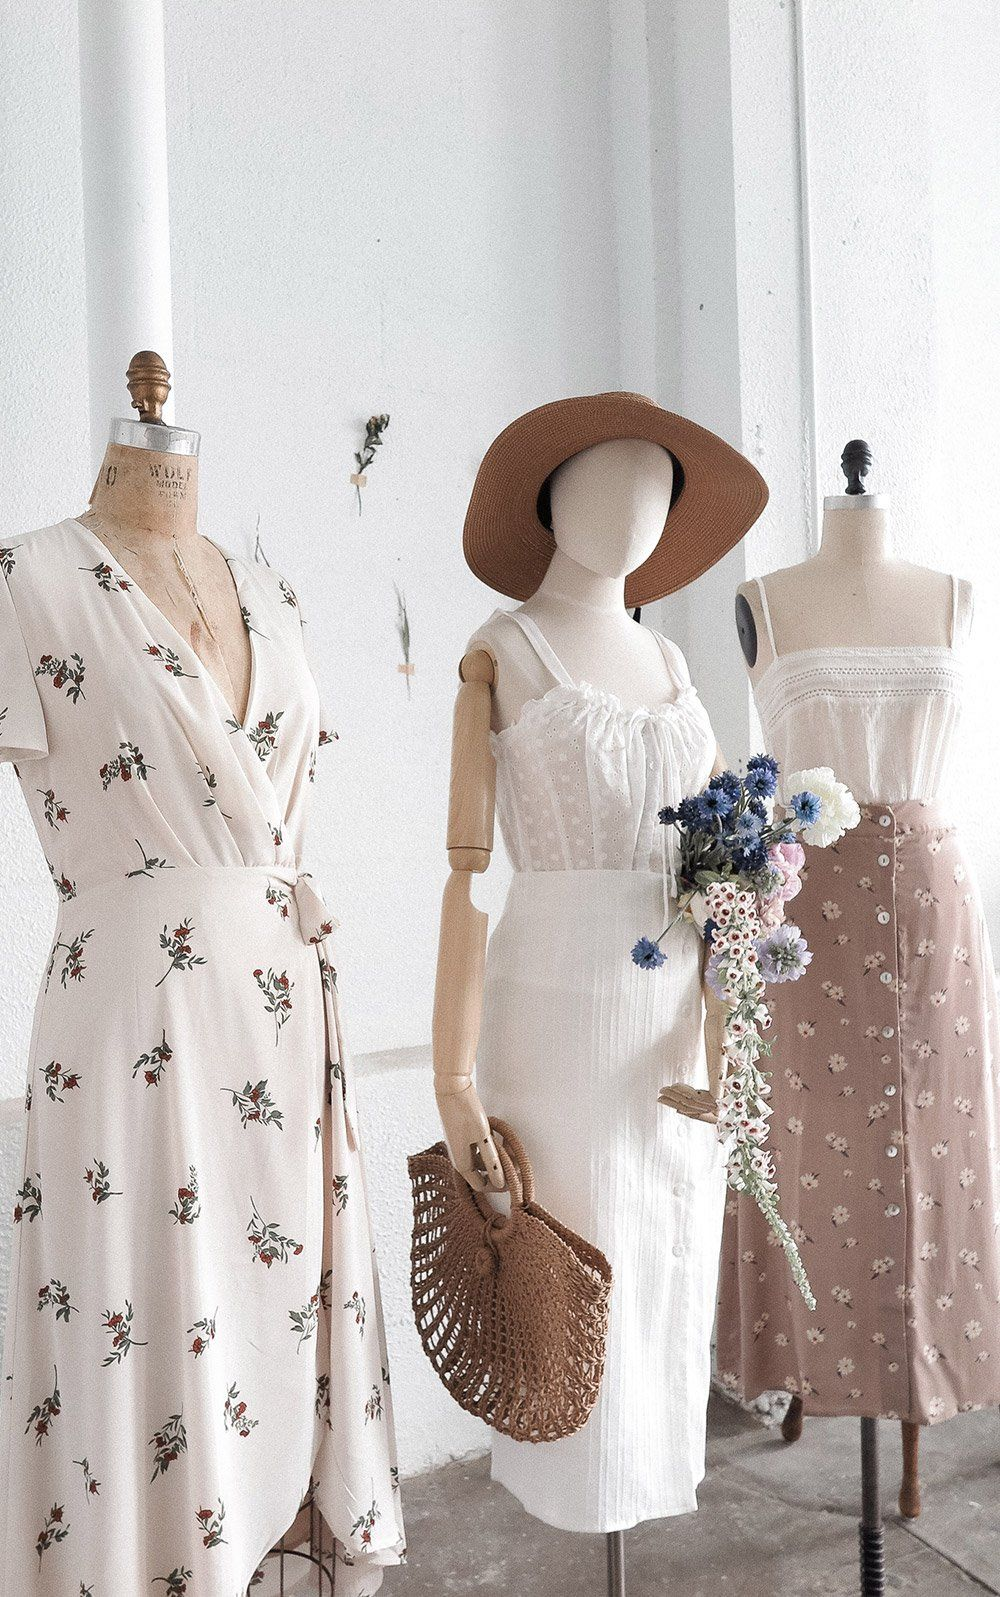 Outfits For Kindred Spirits Vintage Inspired Outfits Shopping Outfit Vintage Fashion [ 1597 x 1000 Pixel ]